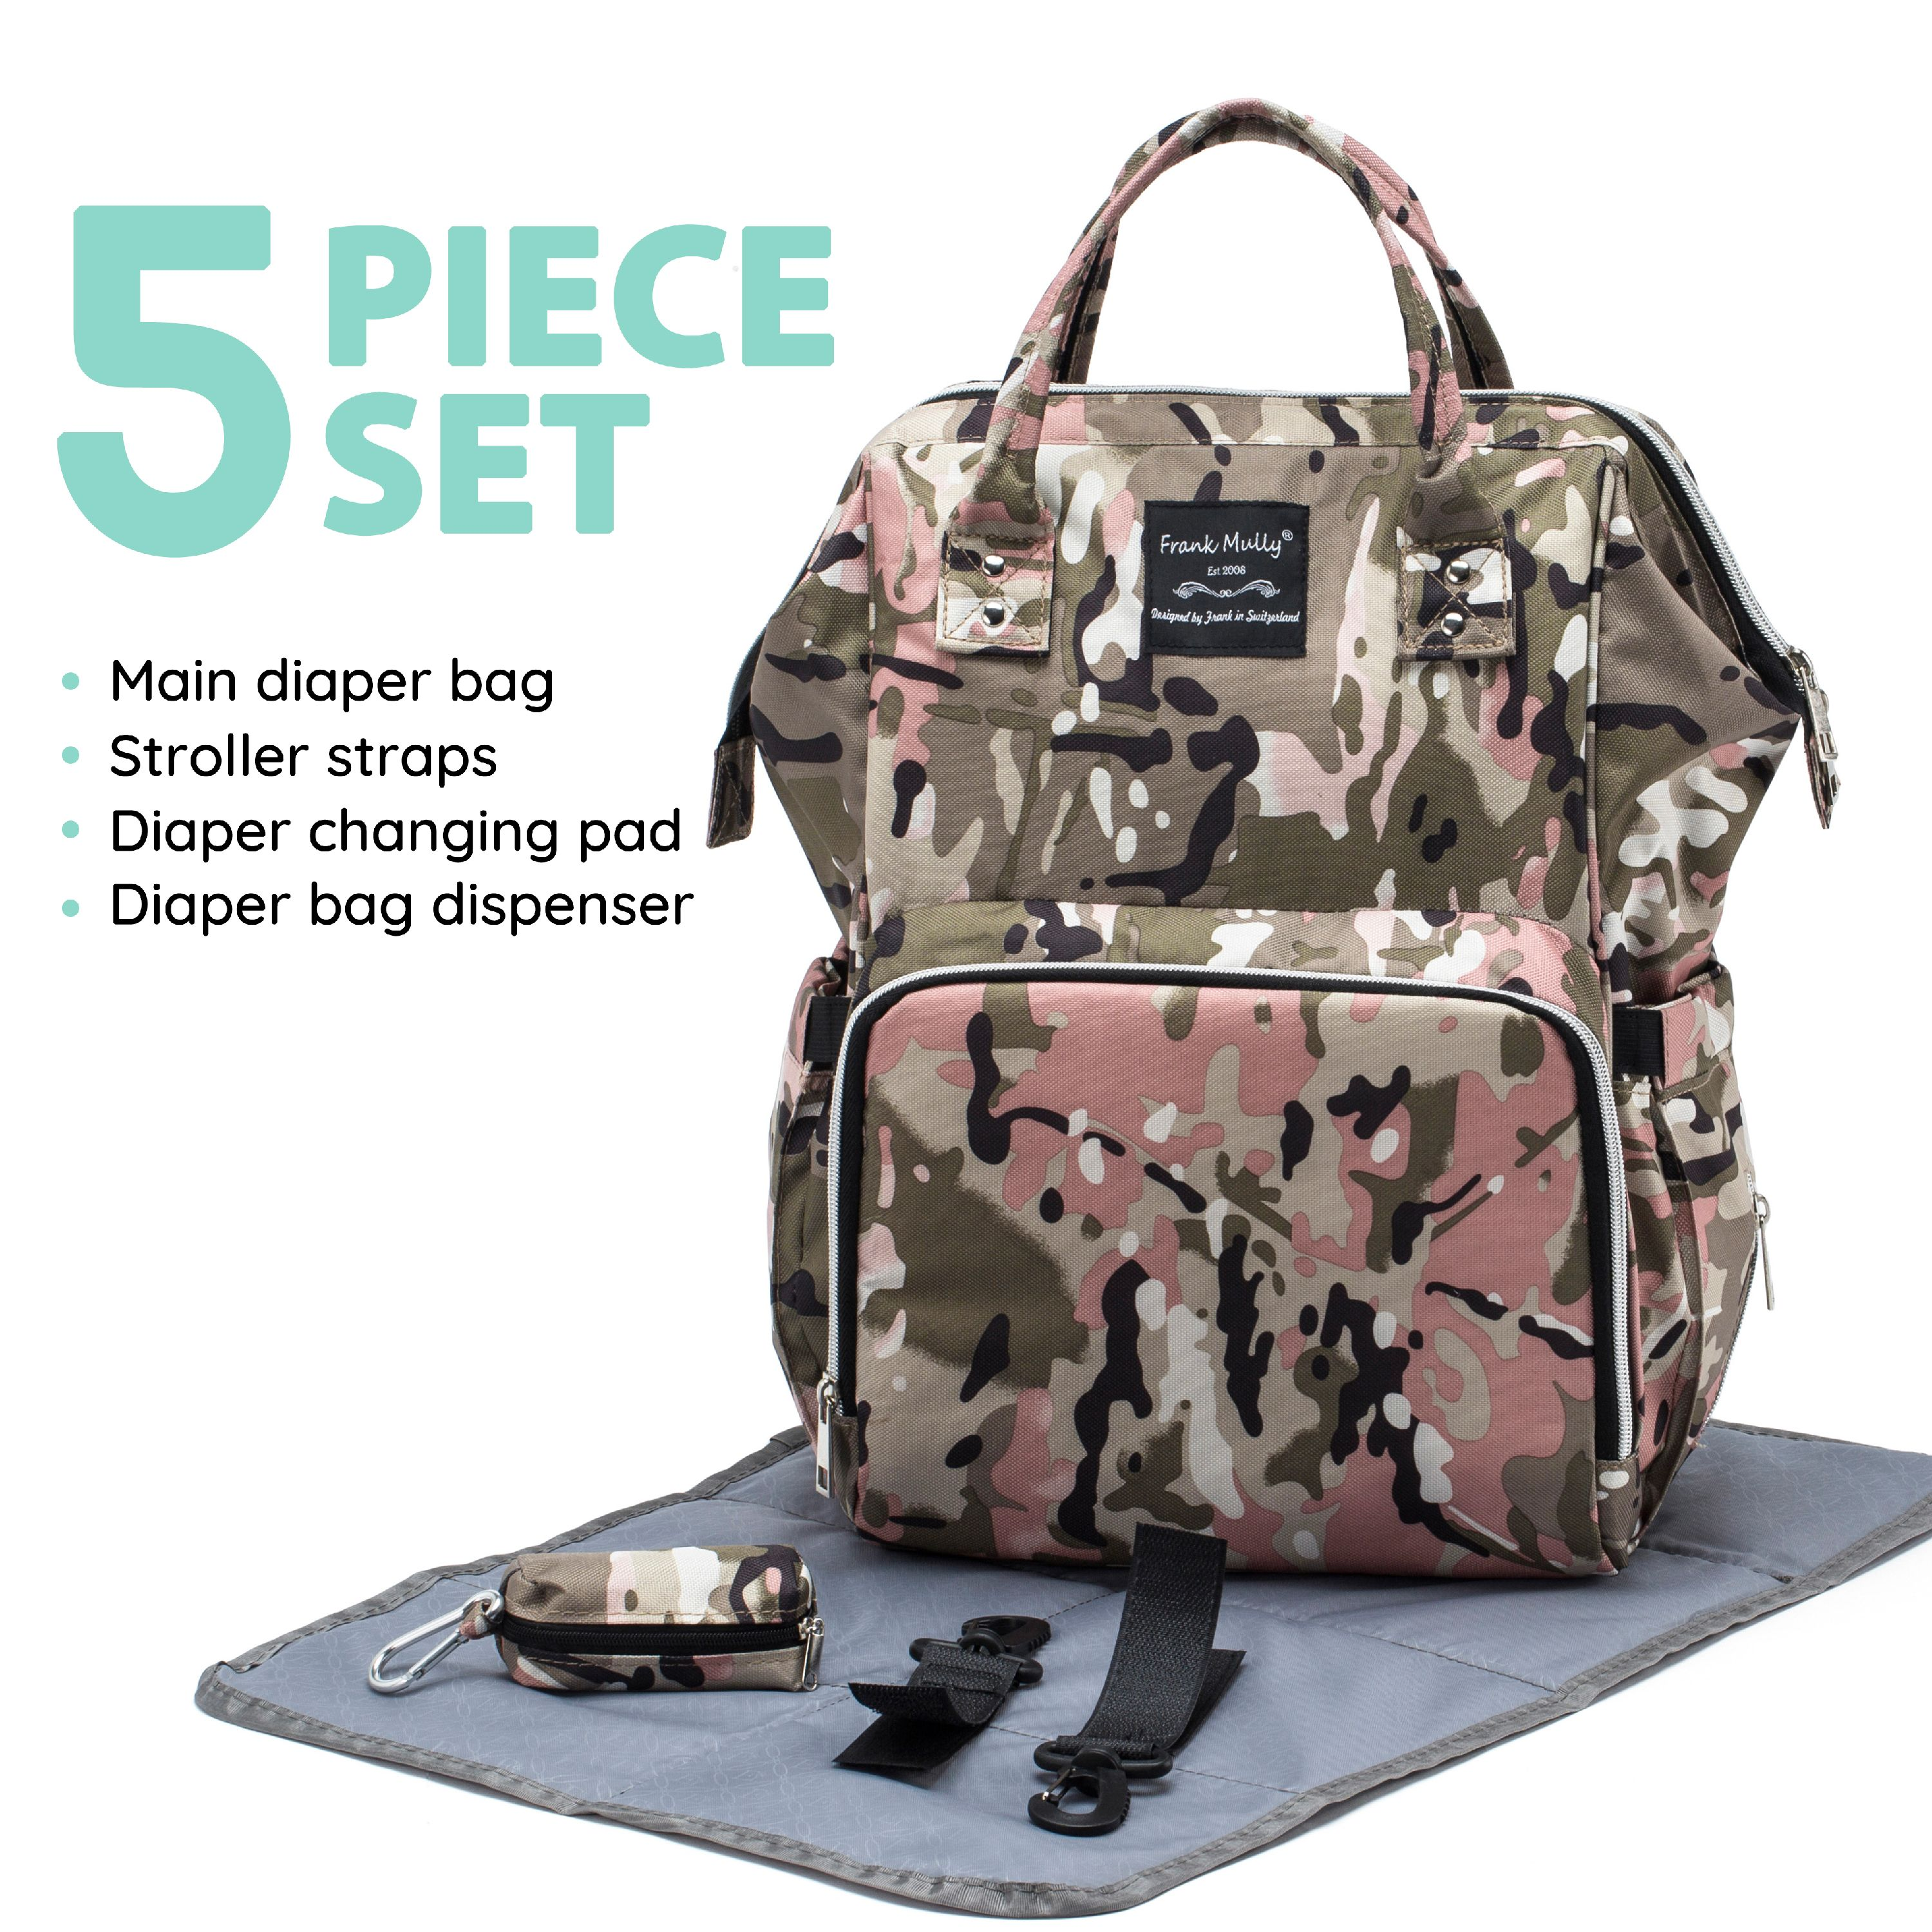 SoHo Collections, Unisex Insulated Large Tote Diaper Bag Backpack with Stroller Straps and Changing Pad, 5 Piece Set, Metropolitan (Pink Camo)